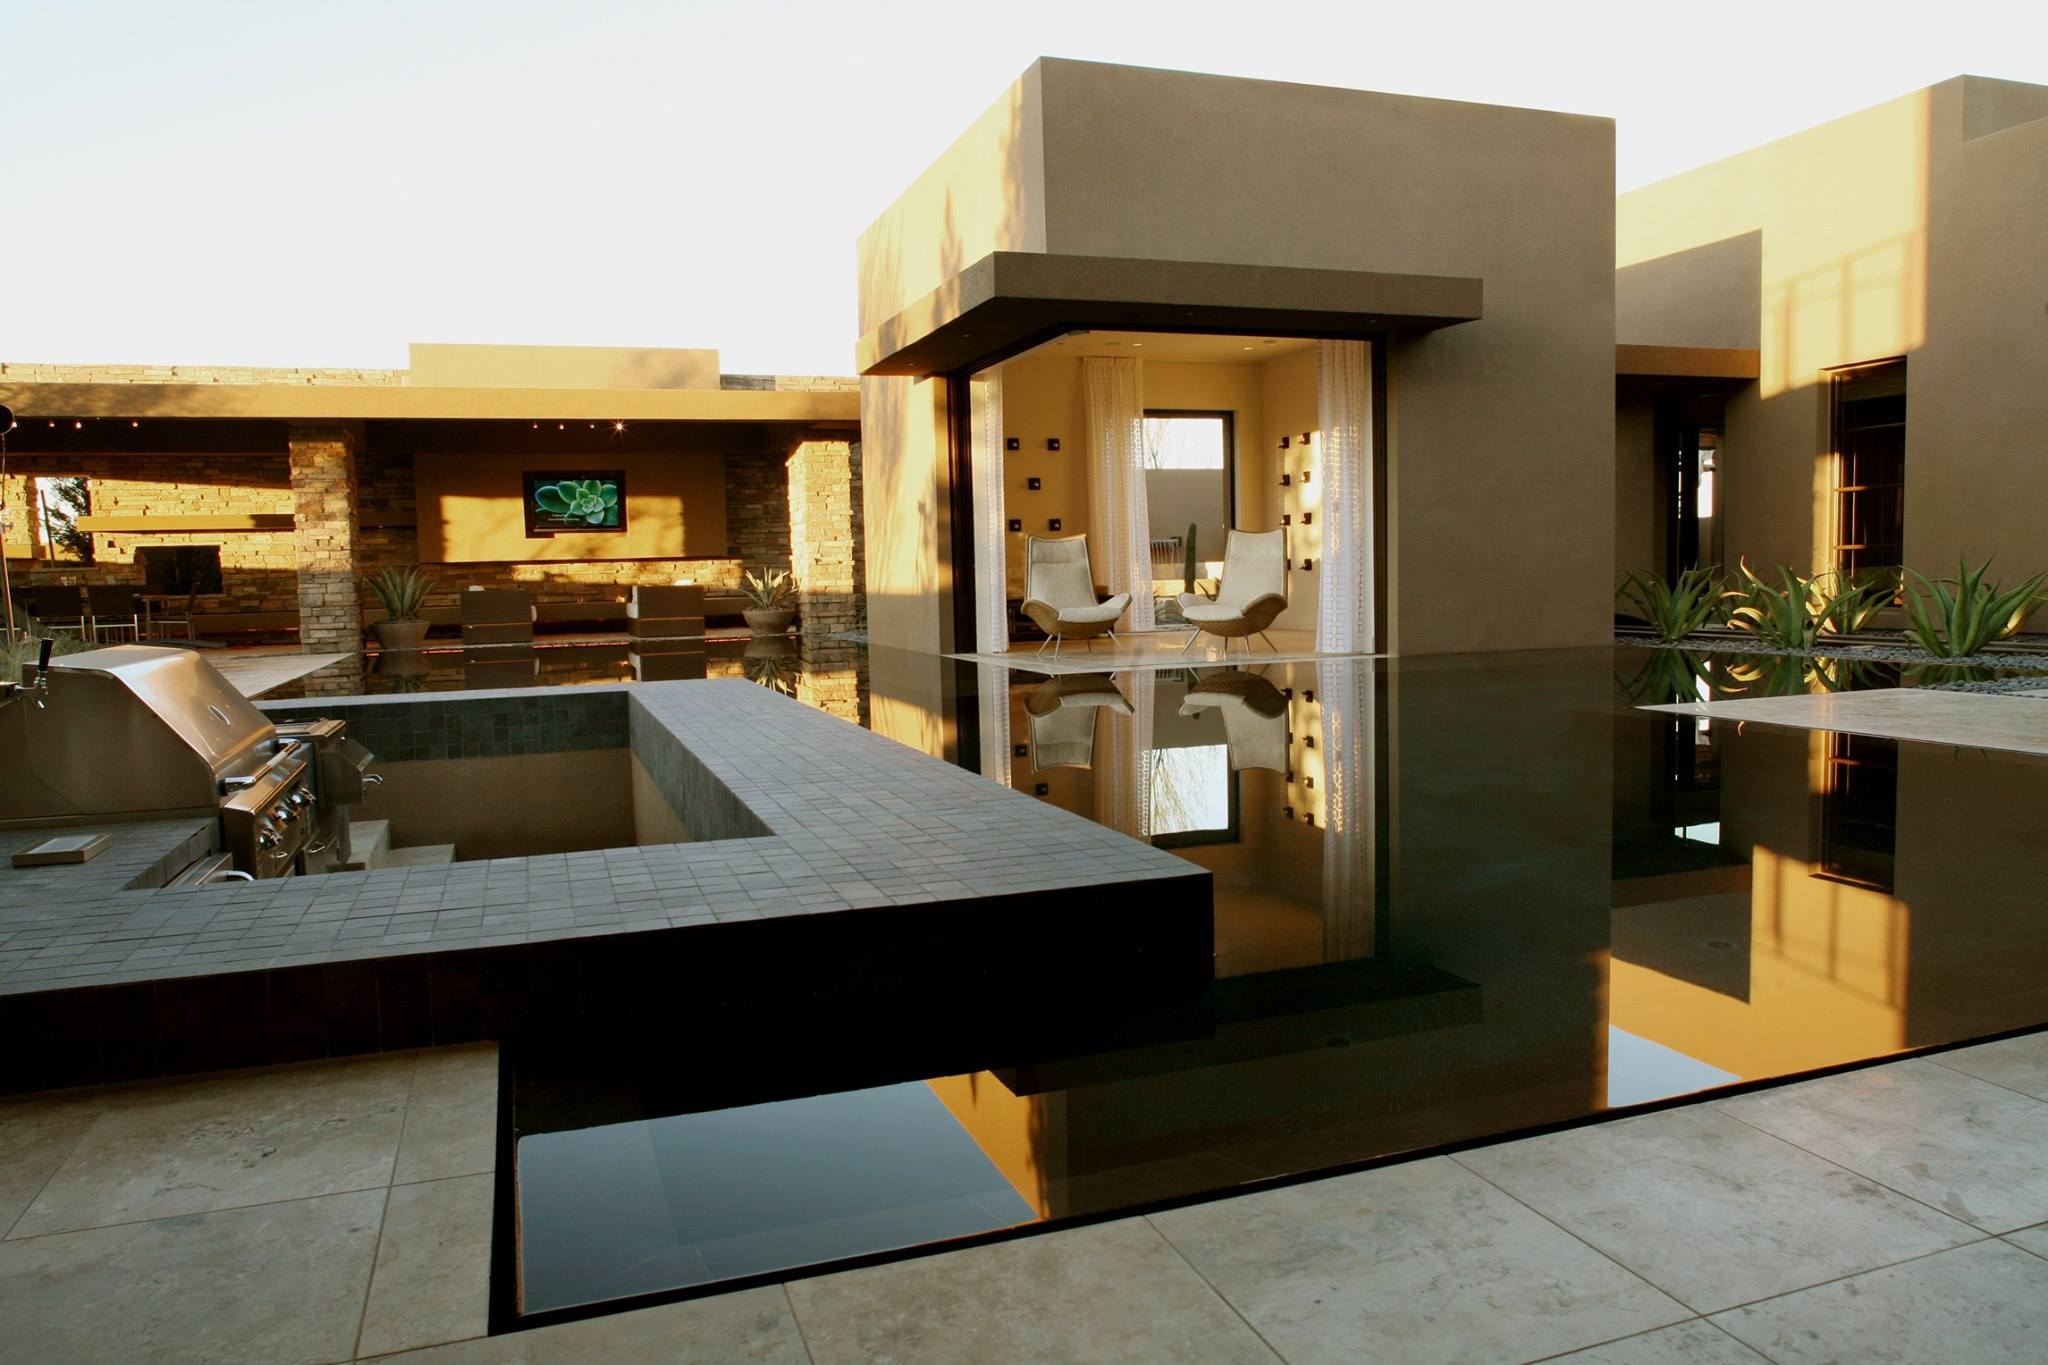 For over 70 years, Anthony & Sylvan has been designing and building quality swimming pools for families in Las Vegas, and has been repeatedly recognized for its reputation for excellence. This reputation was earned by providing high value to their customers--with the time and money that is invested into adding a swimming pool to a backyard, you want the right swimming pool builder to do the job properly, professionally and with high quality workmanship. Contact Anthony & Sylvan today for free designs and estimates on the pool of your dreams! 1-877-SAY-SWIM (729-7946) http://www.anthonysylvan.com/locations/nevada/